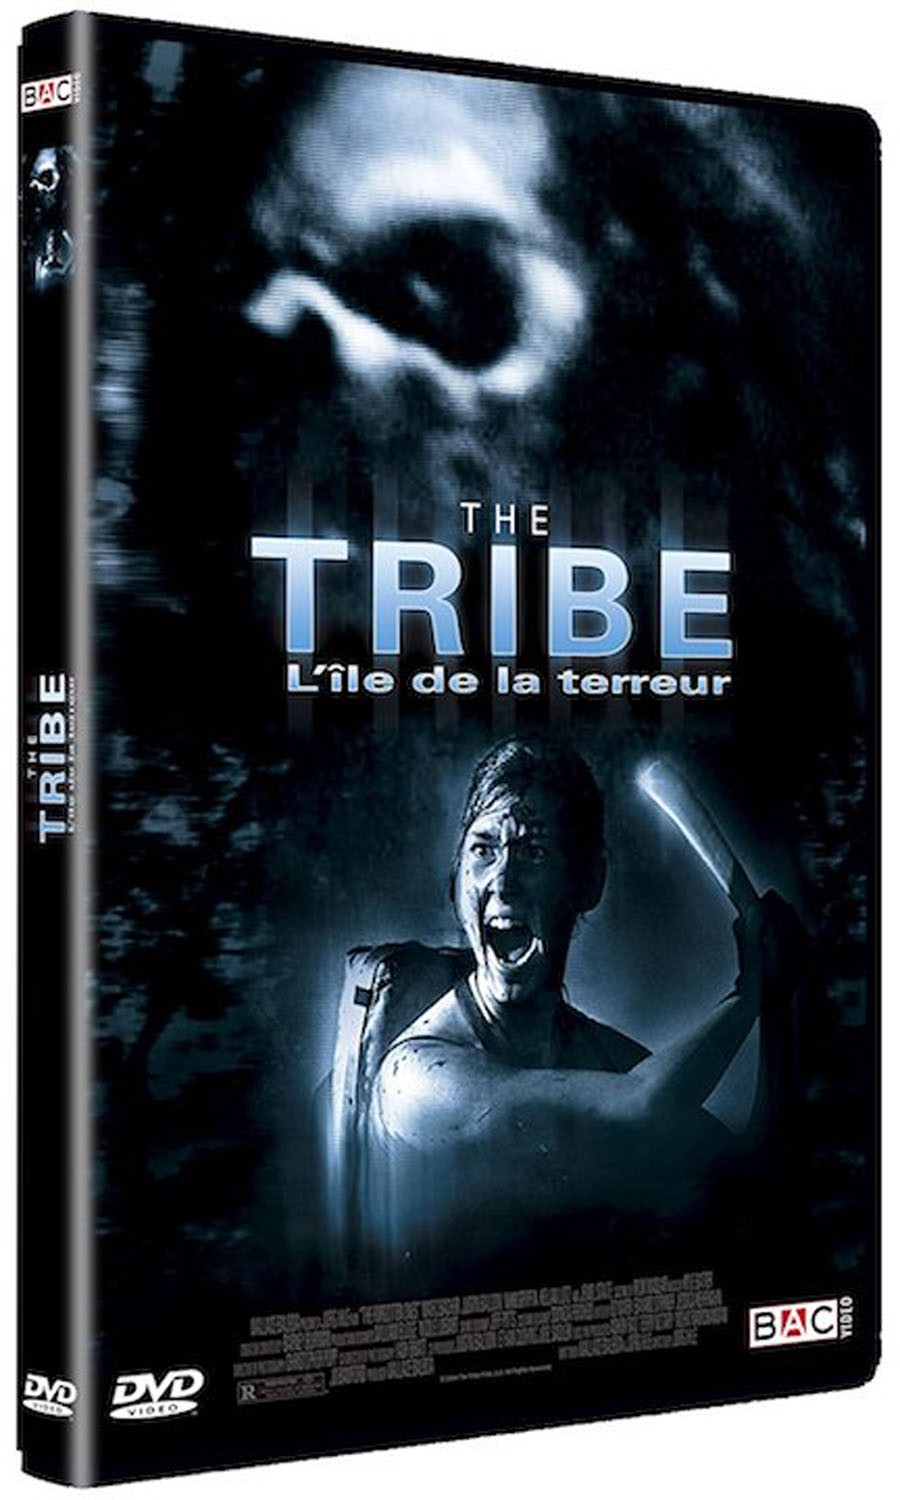 THE TRIBE - L'ILE DE LA TERREUR